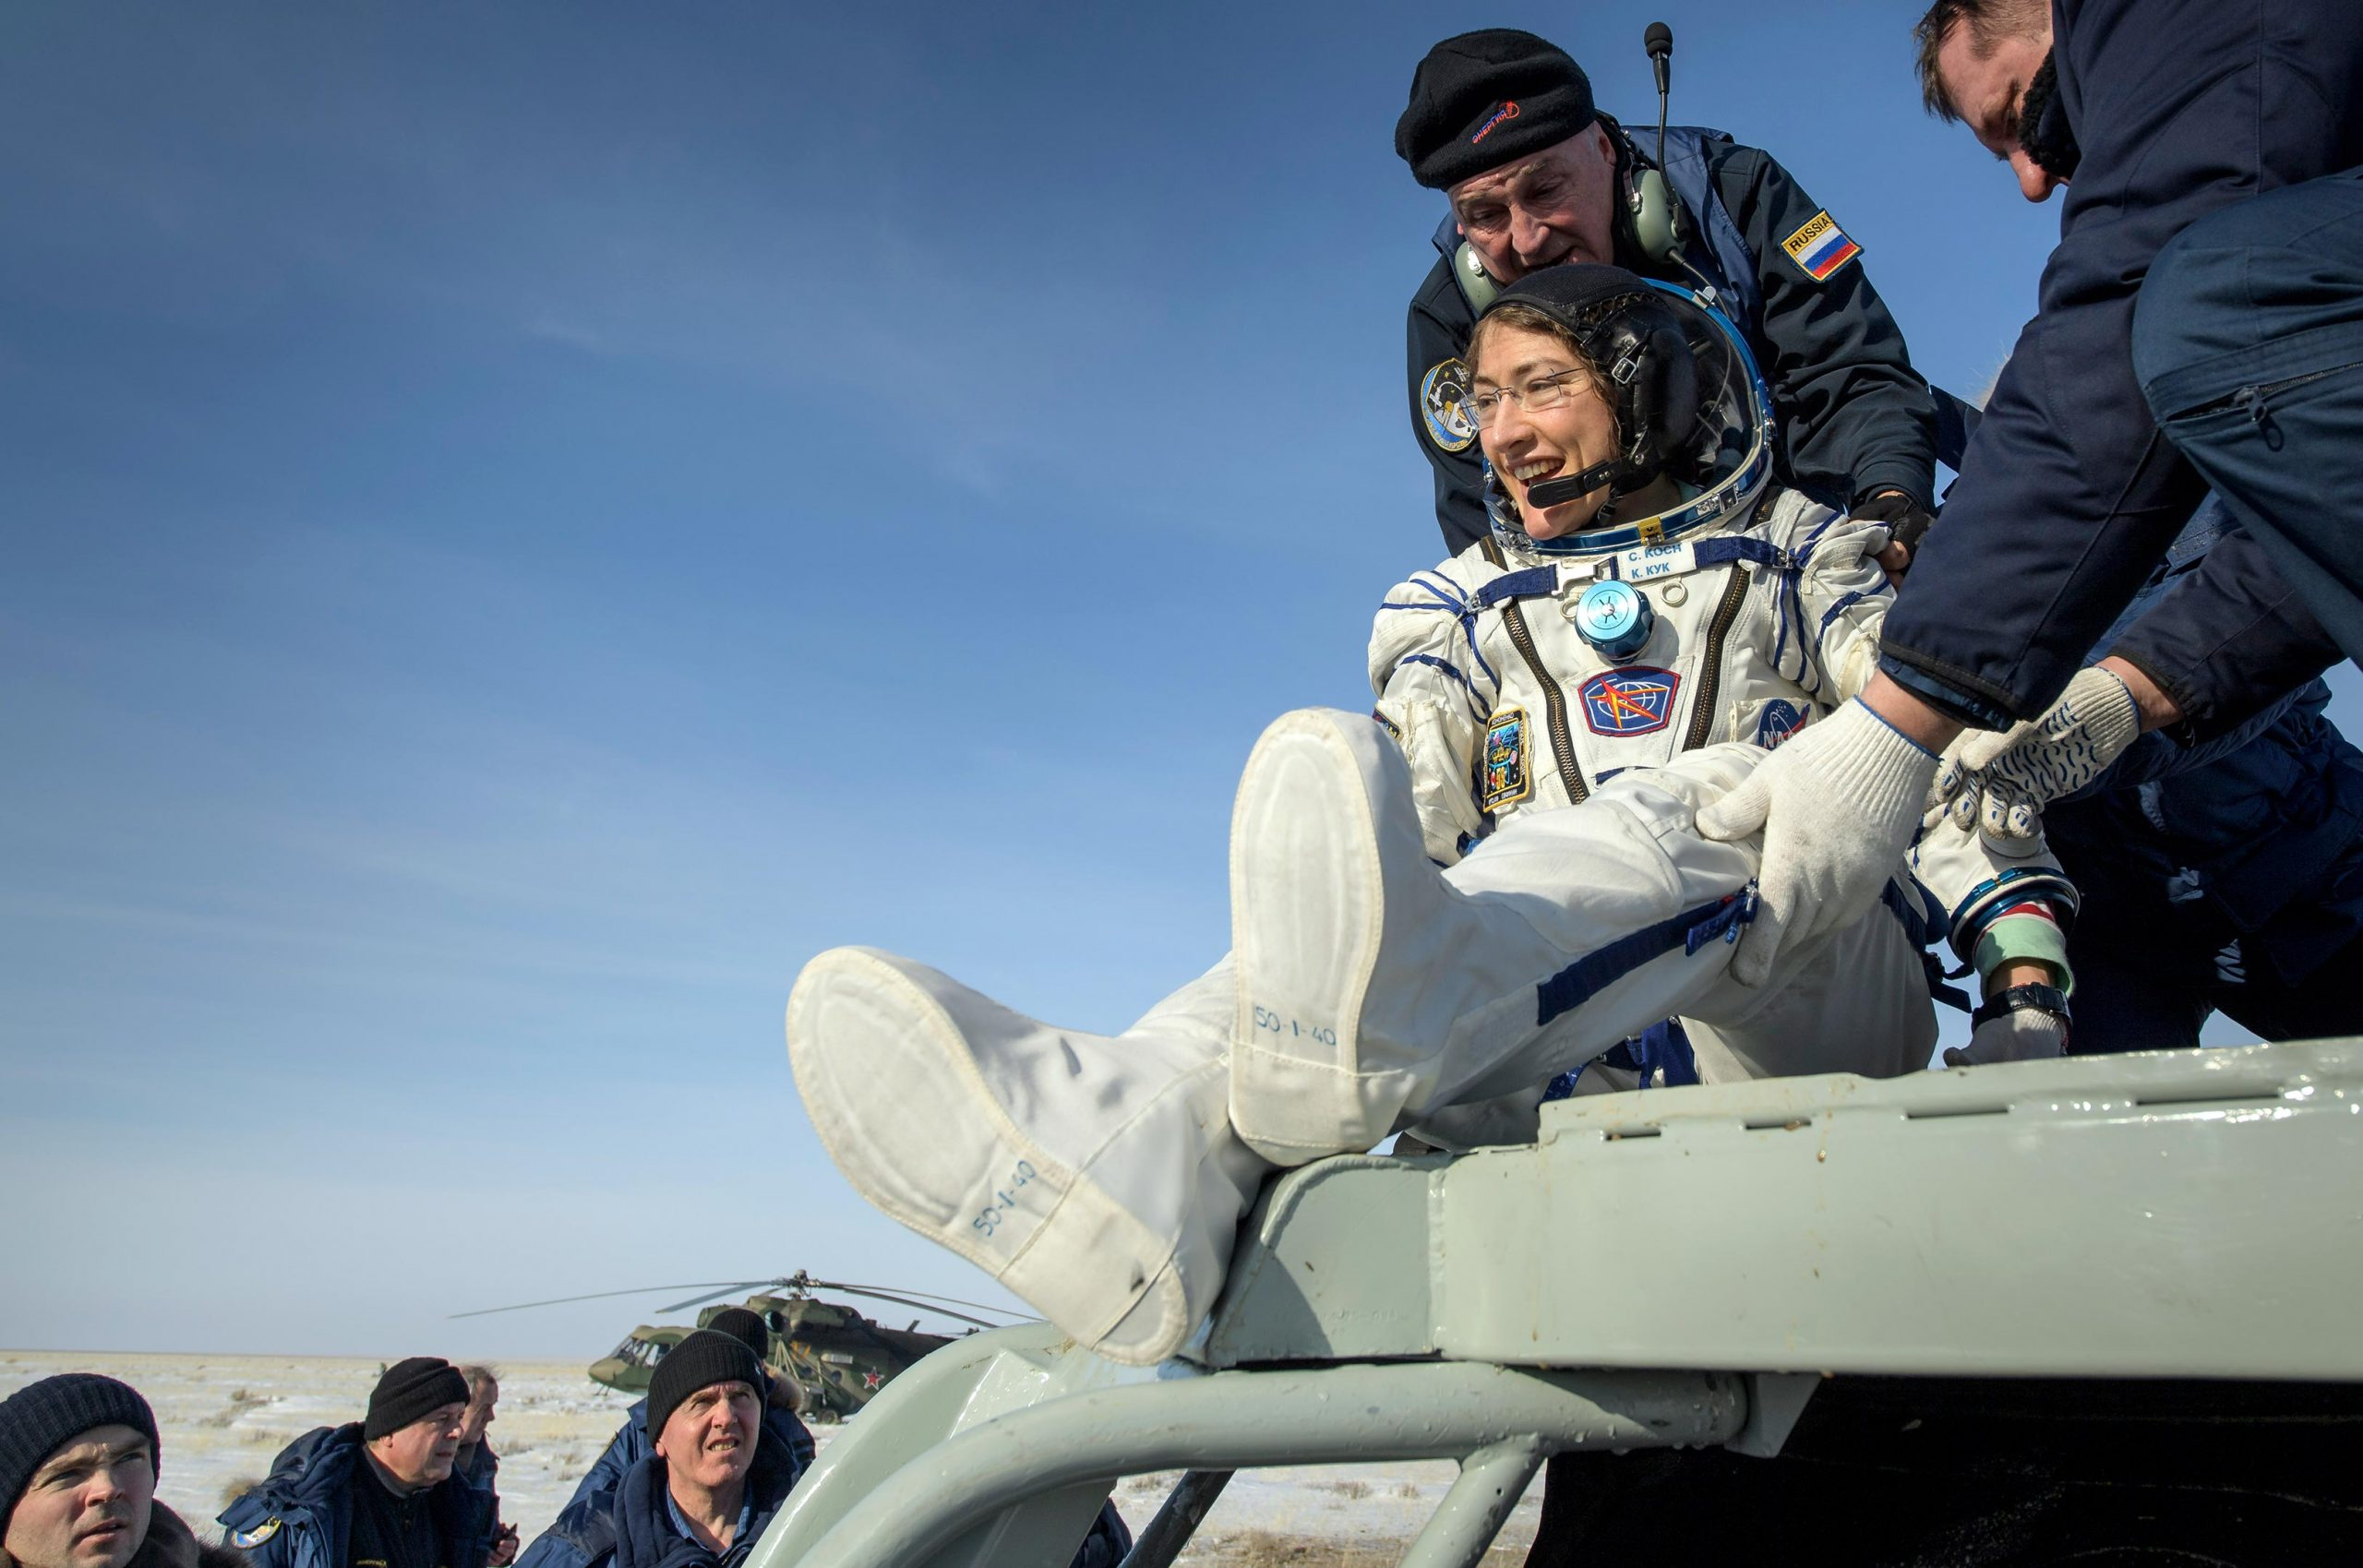 NASA Astronaut Returns to Earth After Record-Setting Spaceflight - SciTechDaily